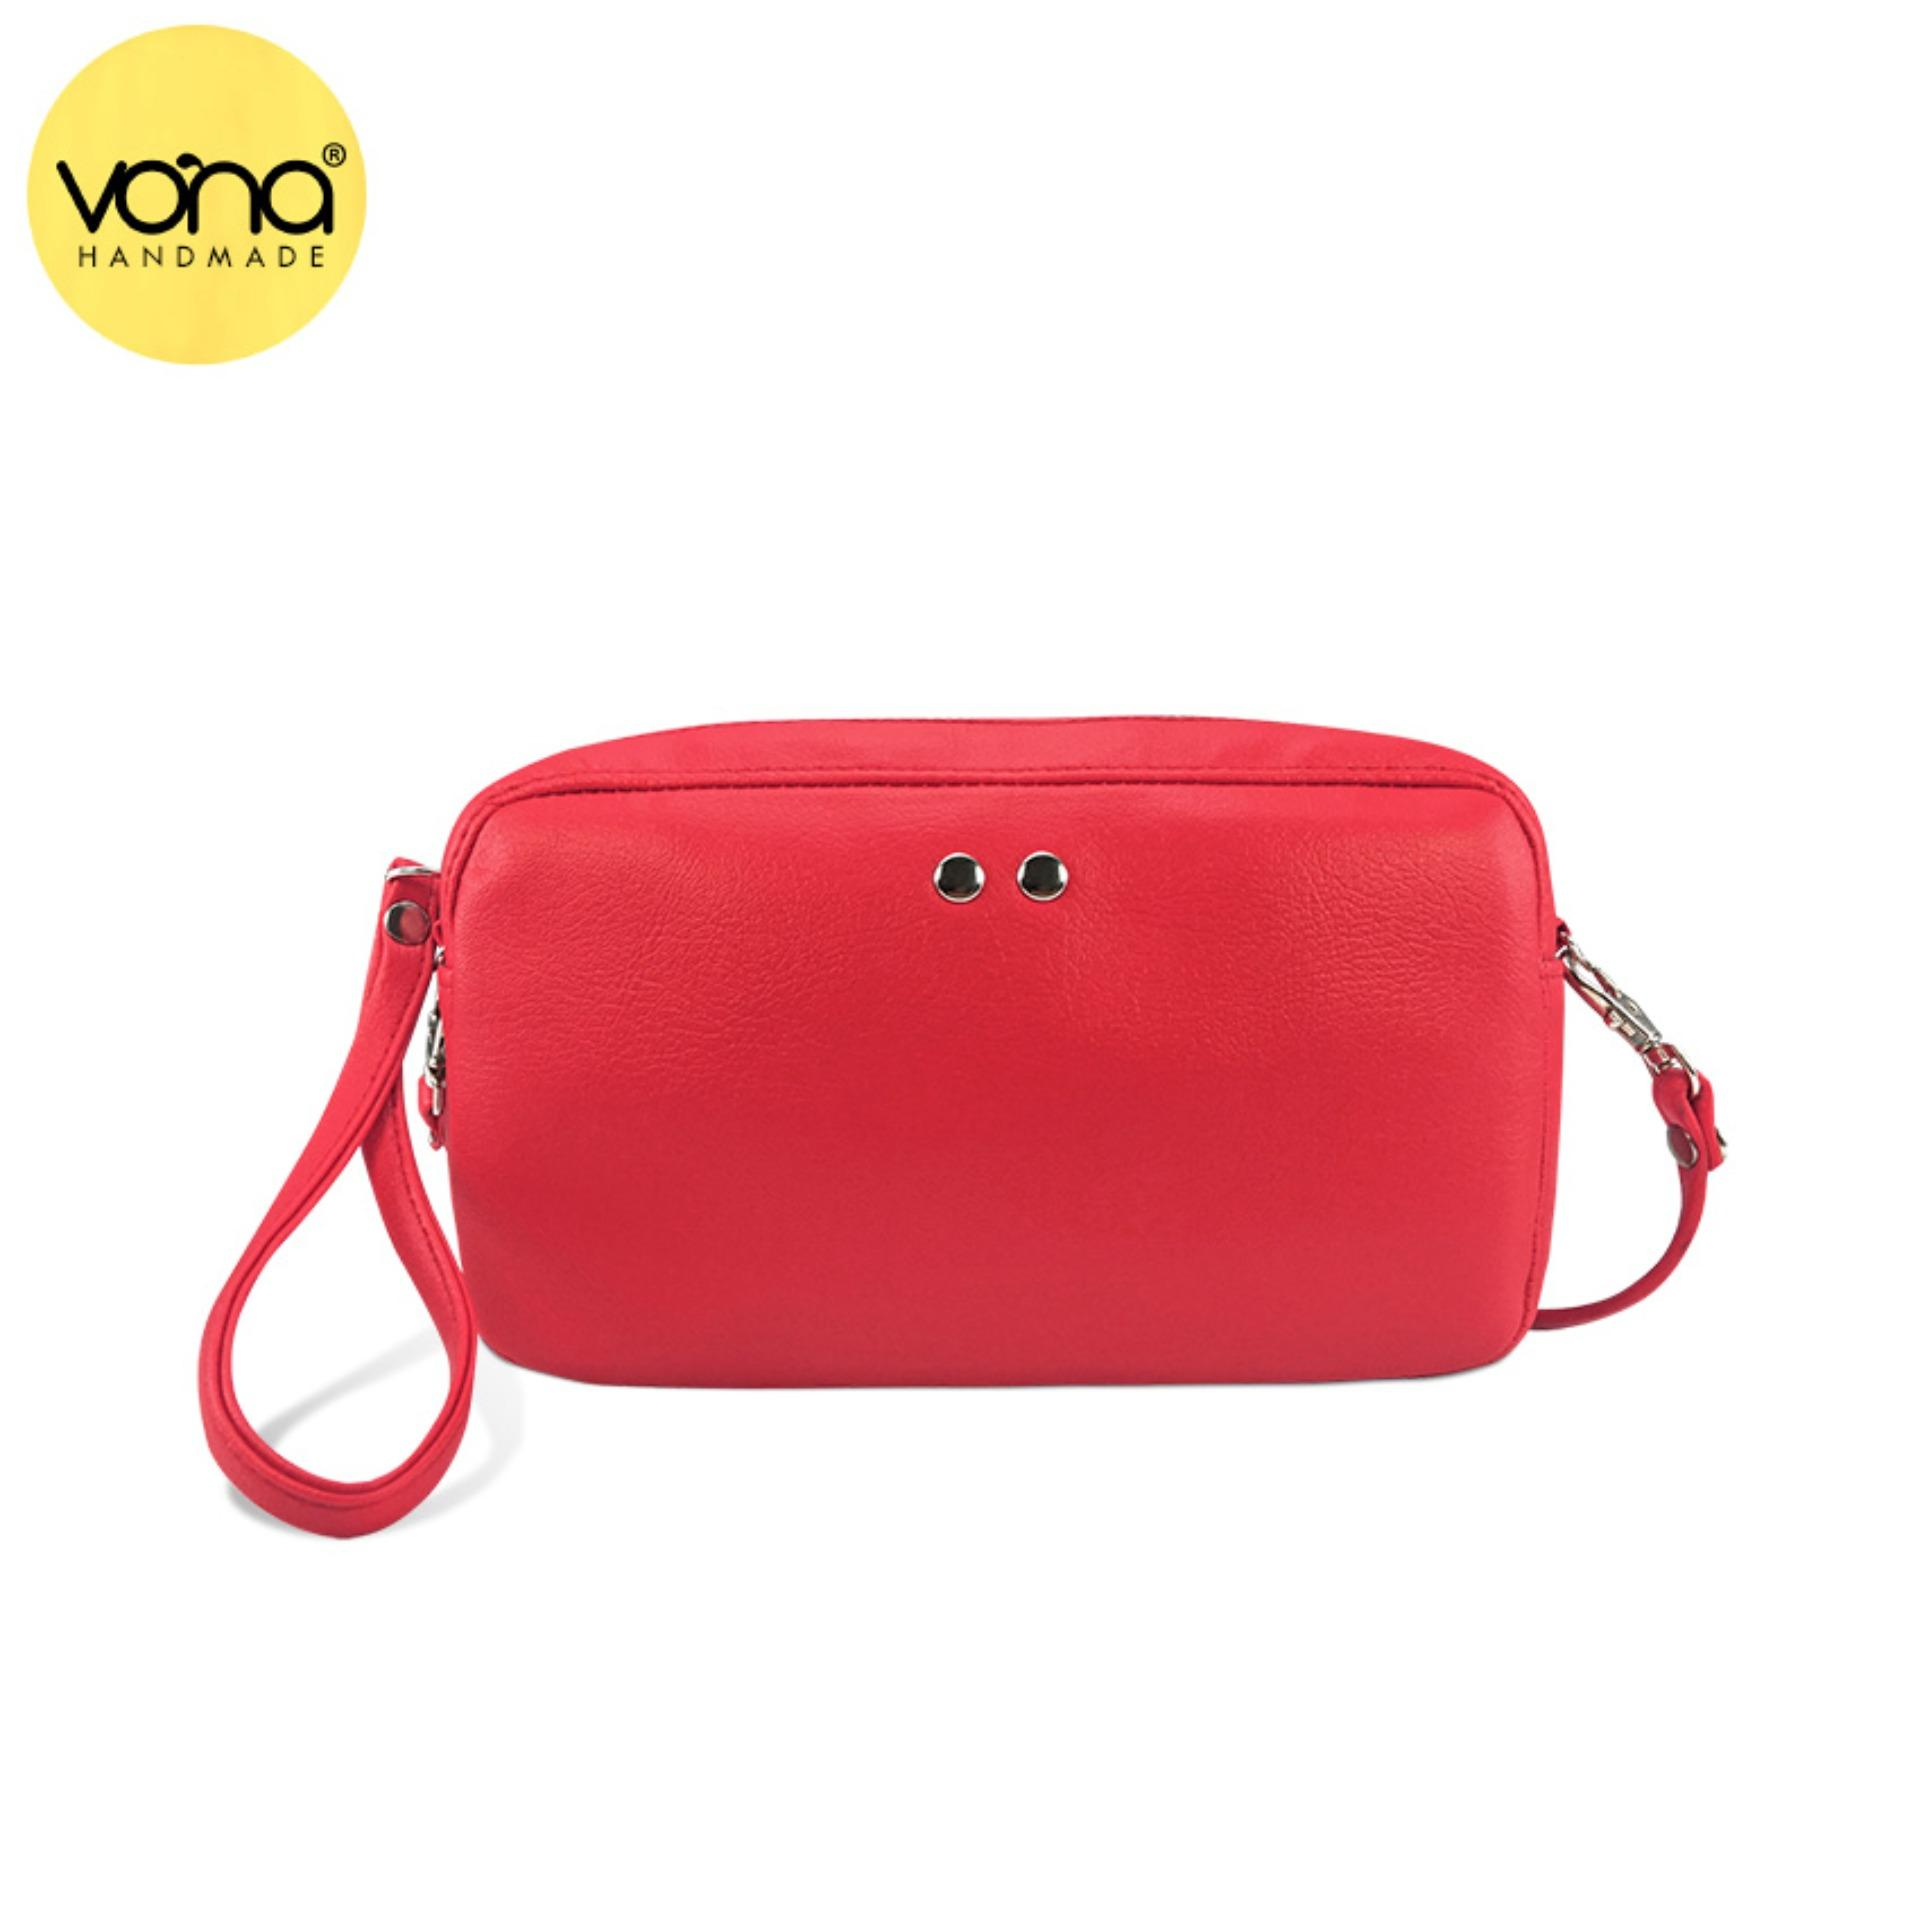 Diskon Produk Vona Hopp Clutch Merah Clutch Sling Bag Mini Tas Selempang Bahu Ladies Pu Leather